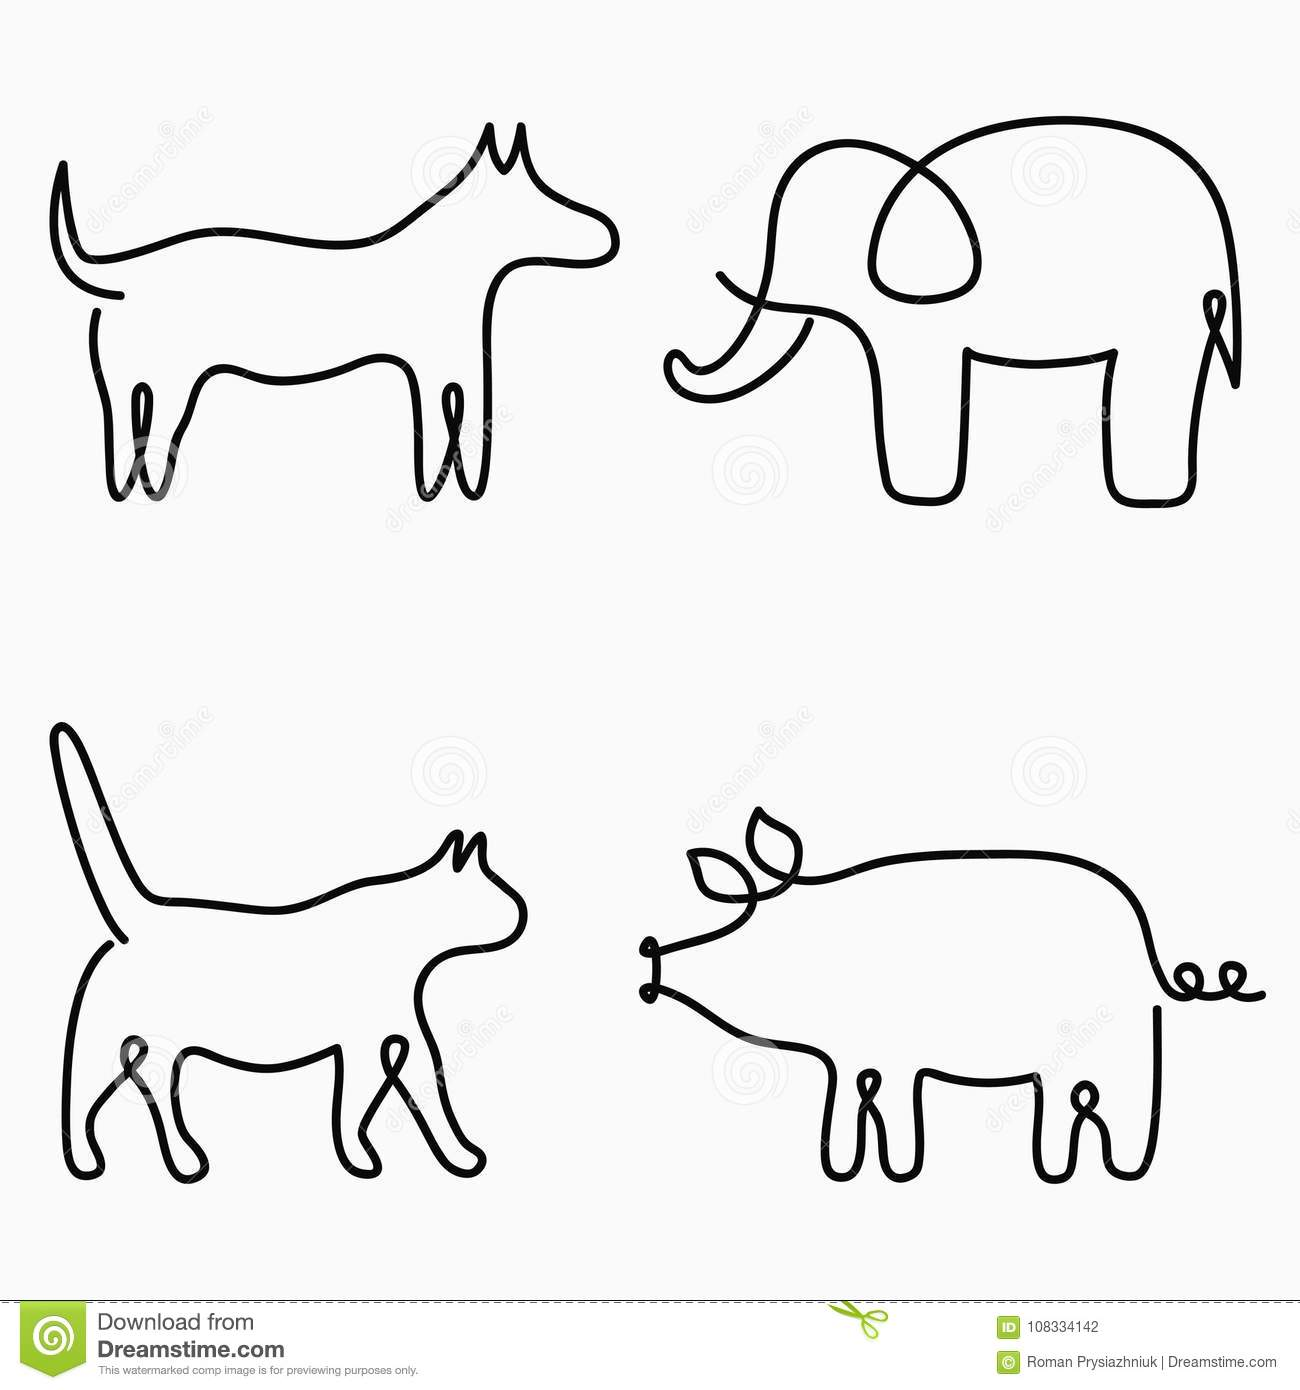 Simple Line Drawings Of Farm Animals : Animals one line drawing continuous print cat dog